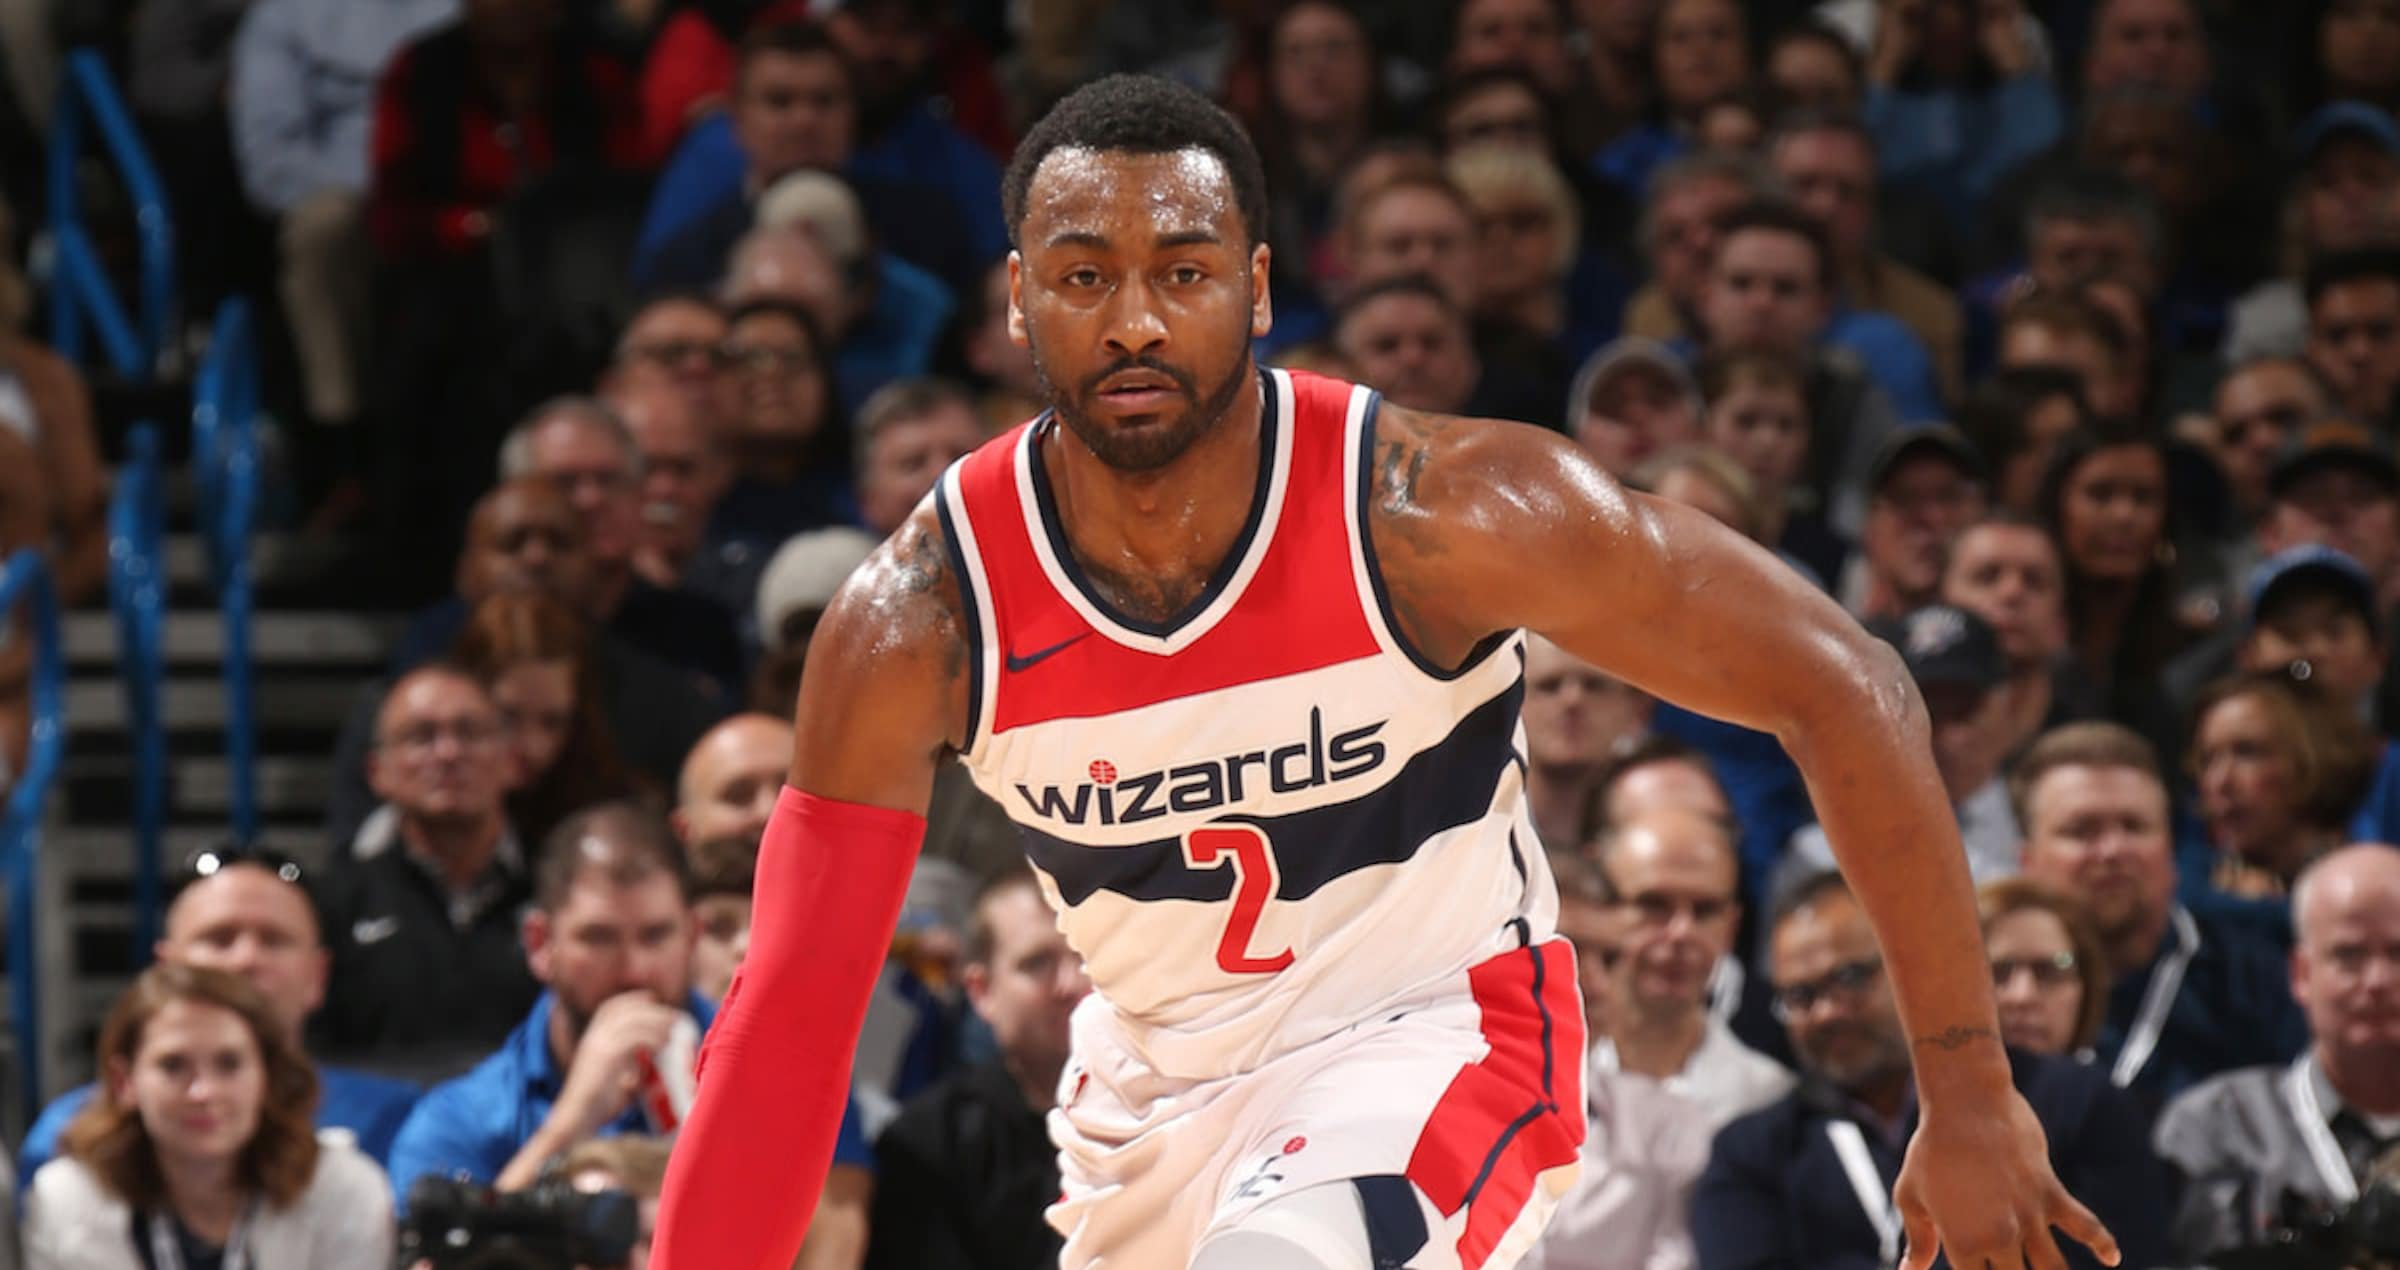 John Wall #2 of the Washington Wizards handles the ball during the game against the Oklahoma City Thunder on January 25, 2018 at Chesapeake Energy Arena in Oklahoma City, Oklahoma.